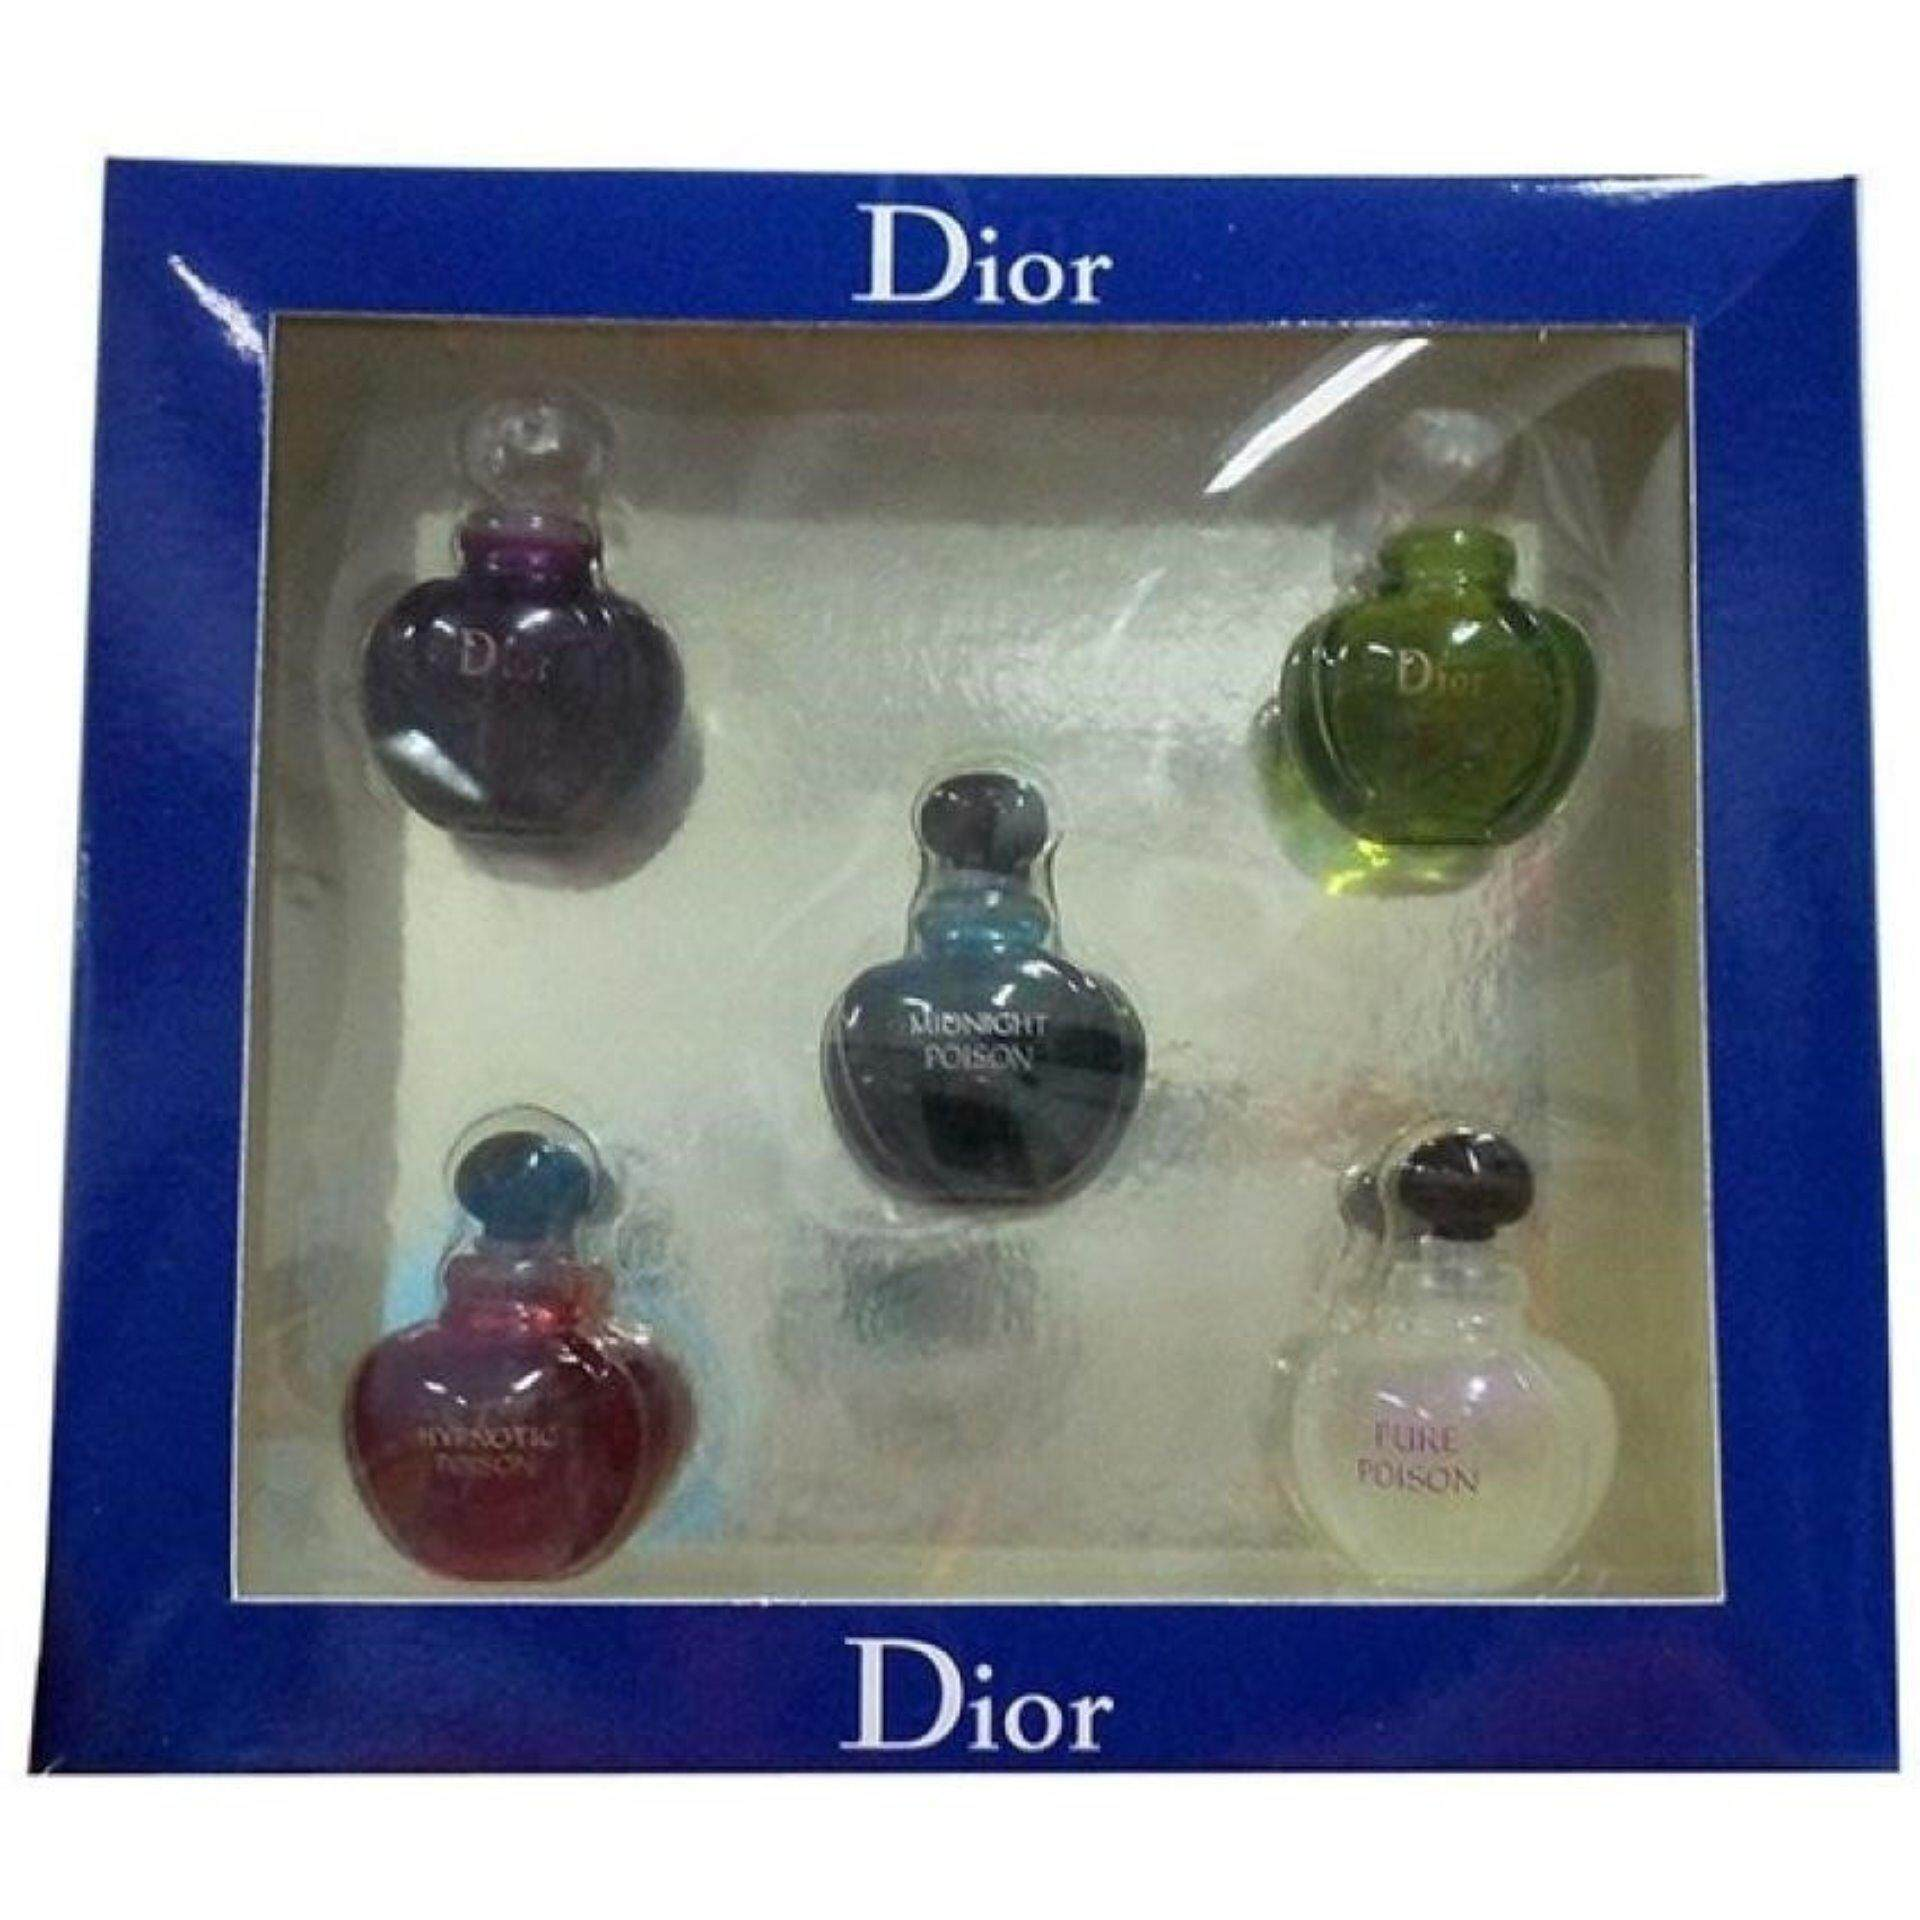 Christian Dior 5 in 1 Perfume Miniature Poison Set- Imported Sets (Clearance Way Way Below Cost )